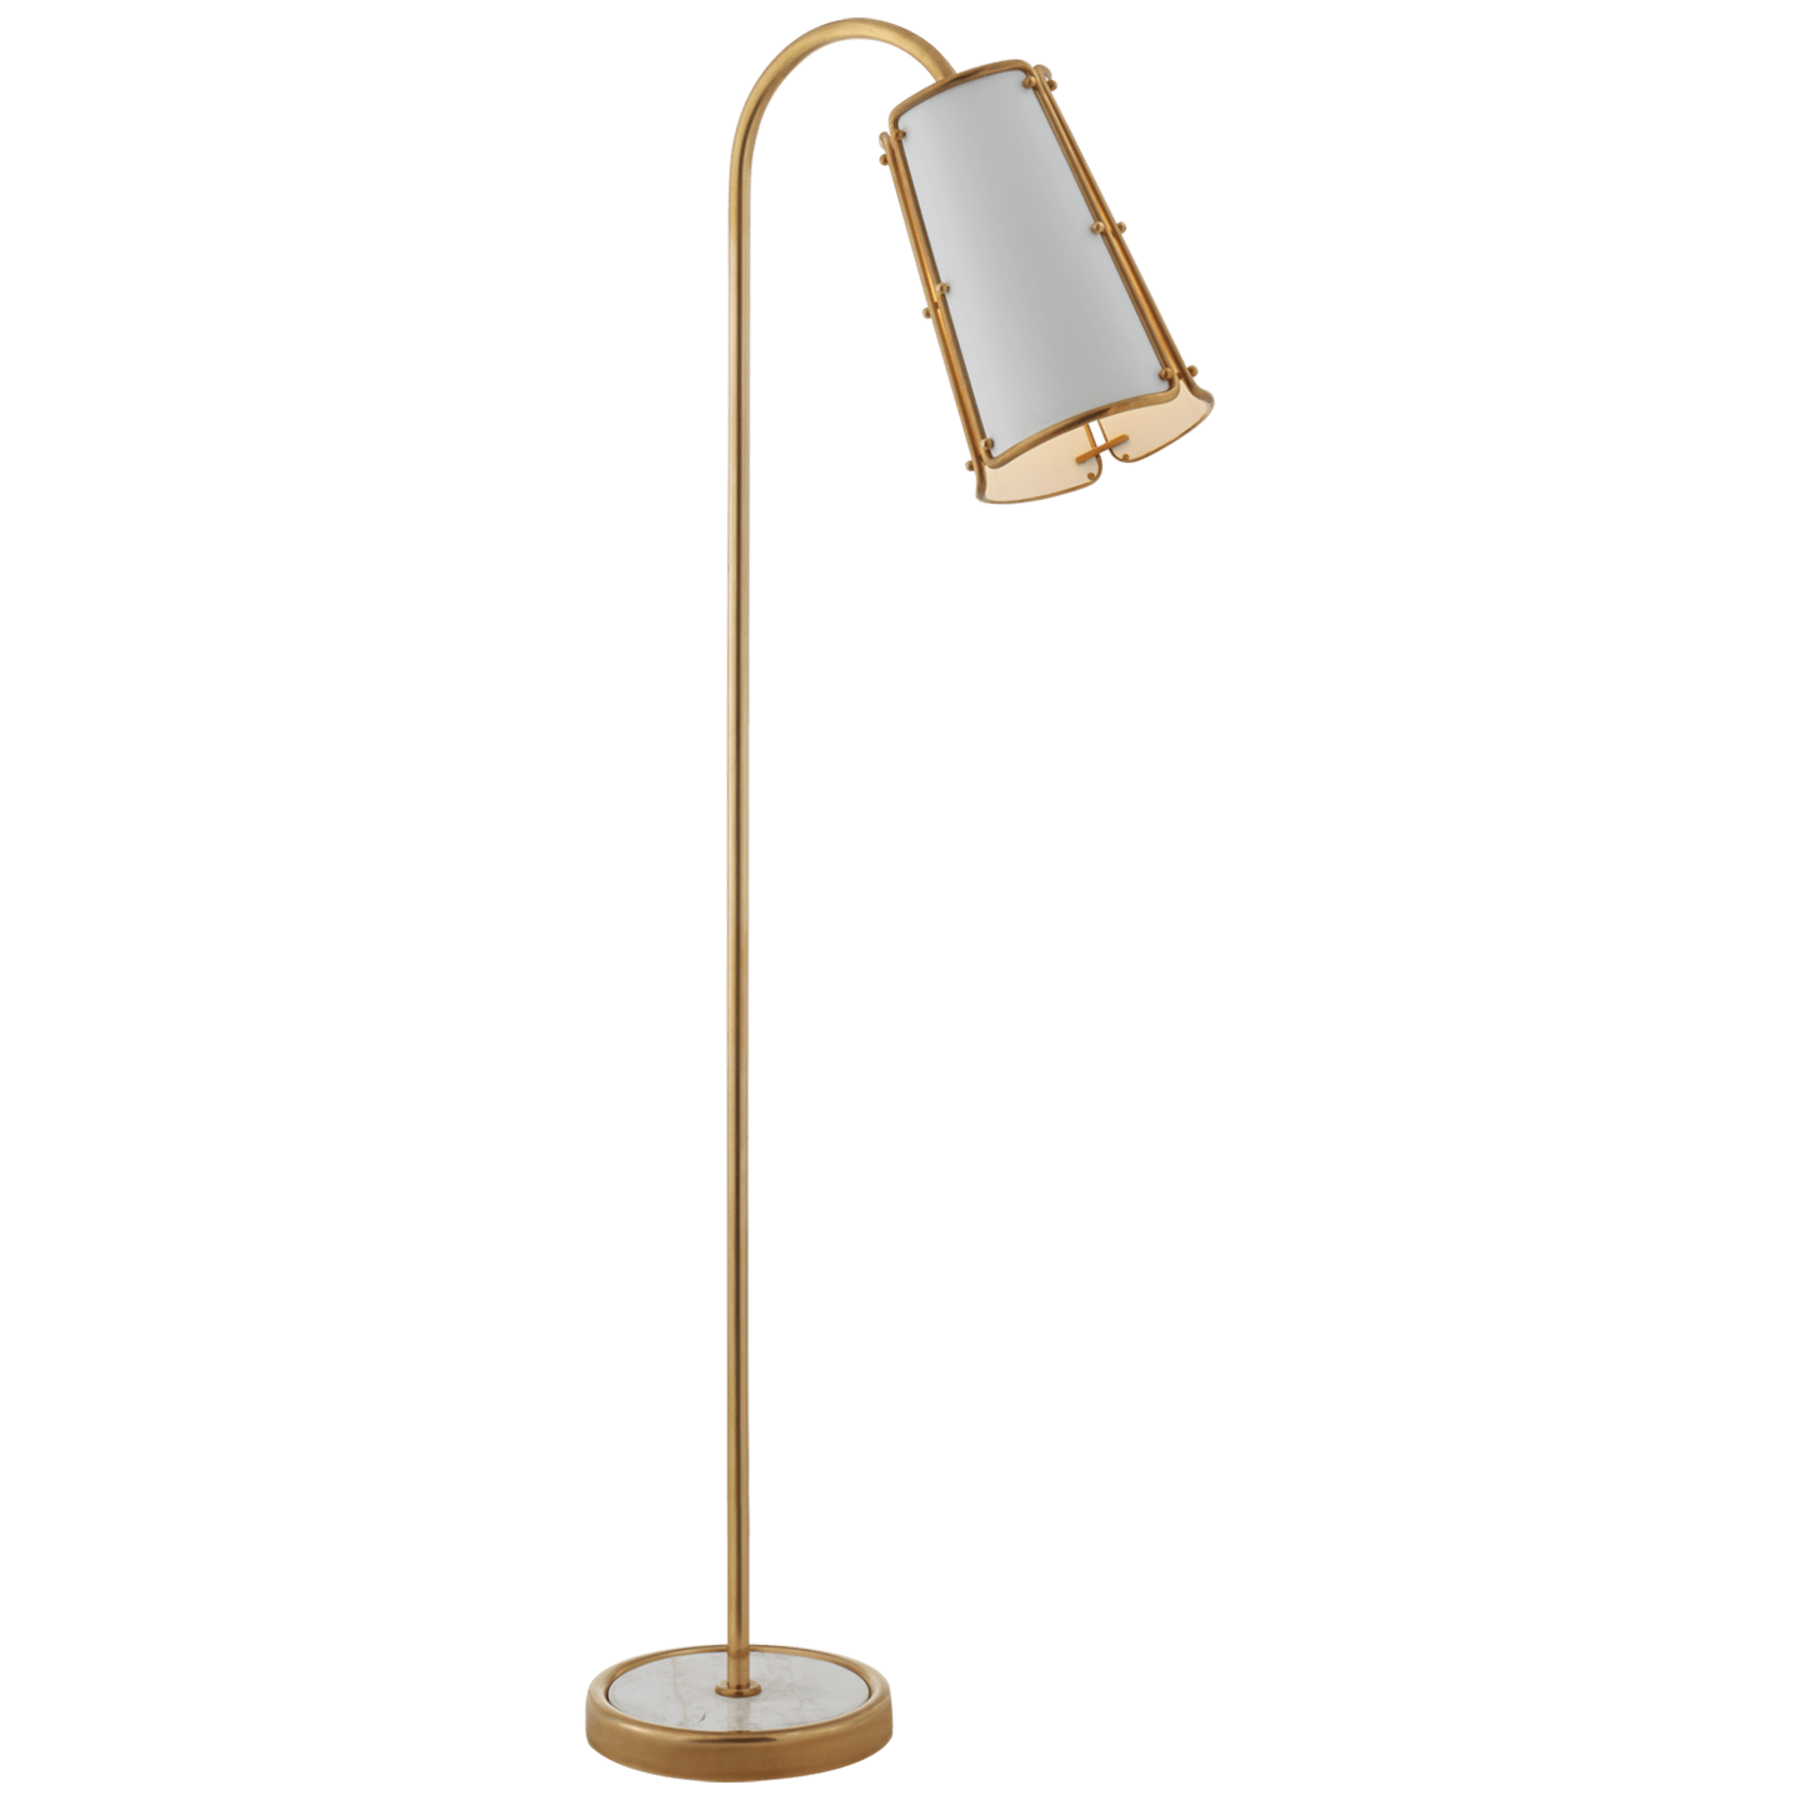 Hastings Medium Floor Lamp